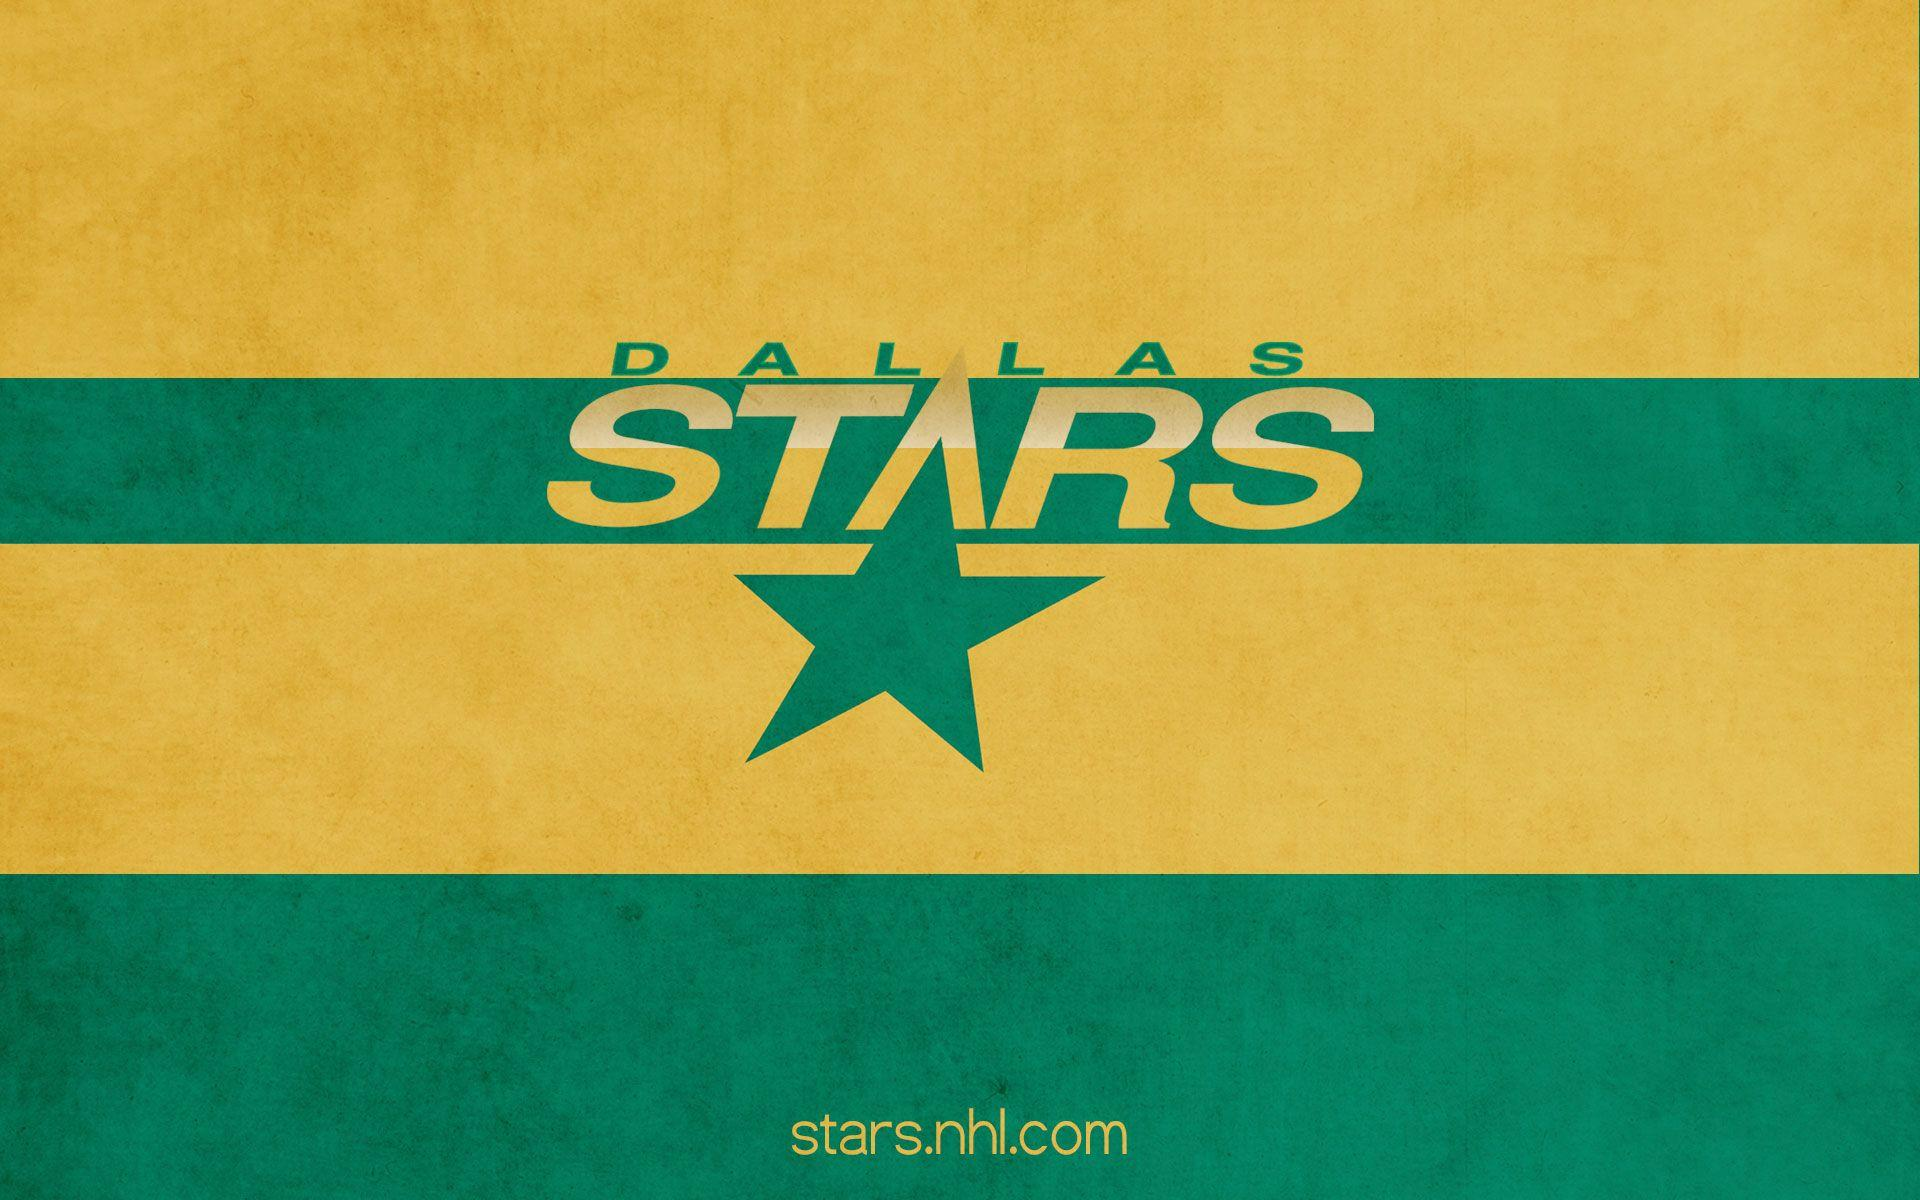 Dallas Stars New Logo Wallpaper - WallpaperSafari